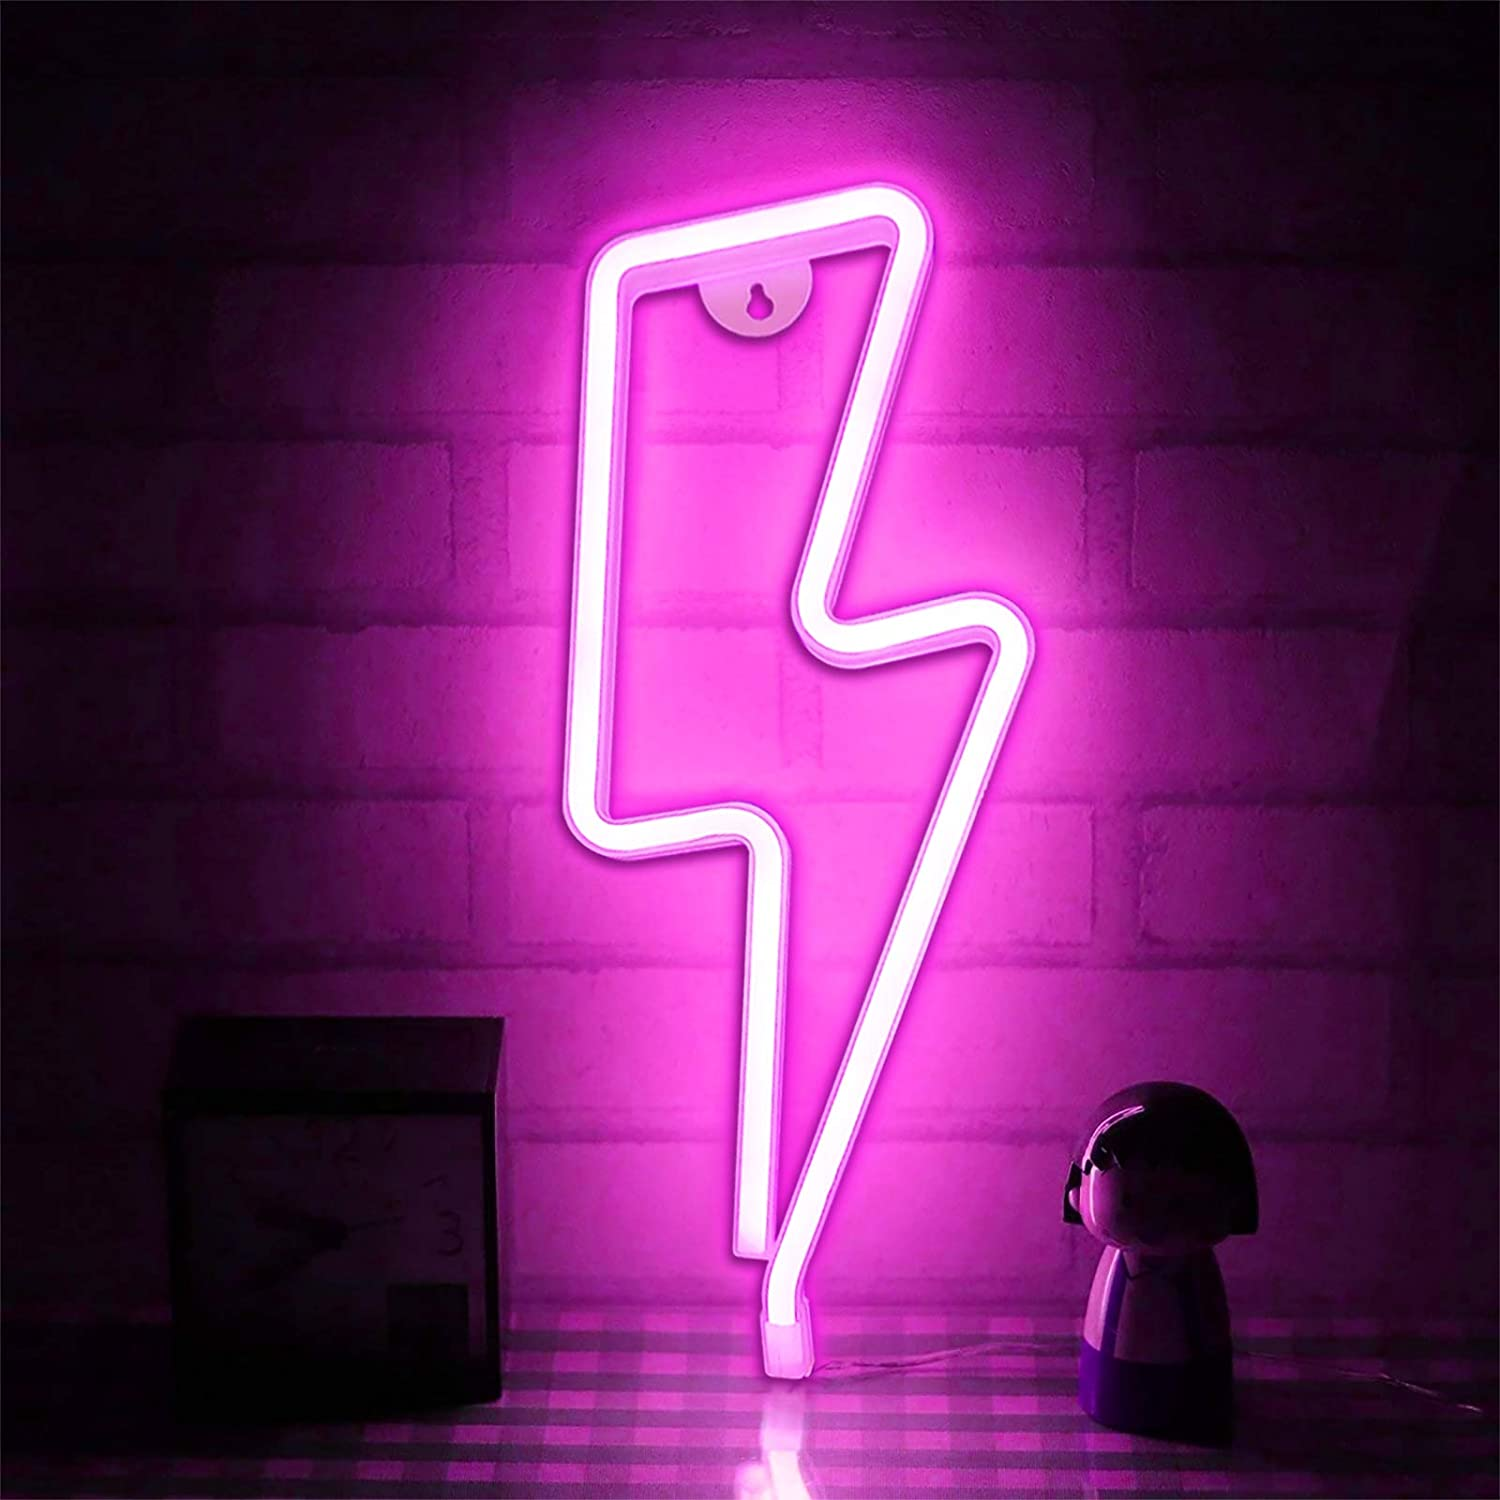 TURNMEON Pink Lightting Bolt Light Neon Lights Signs for Wall Decor, Usb or Battery Led Light up Signs for Bedroom Birthday Party Living Room Home Indoor Christmas Valentines Decoration(Lighting Bolt)